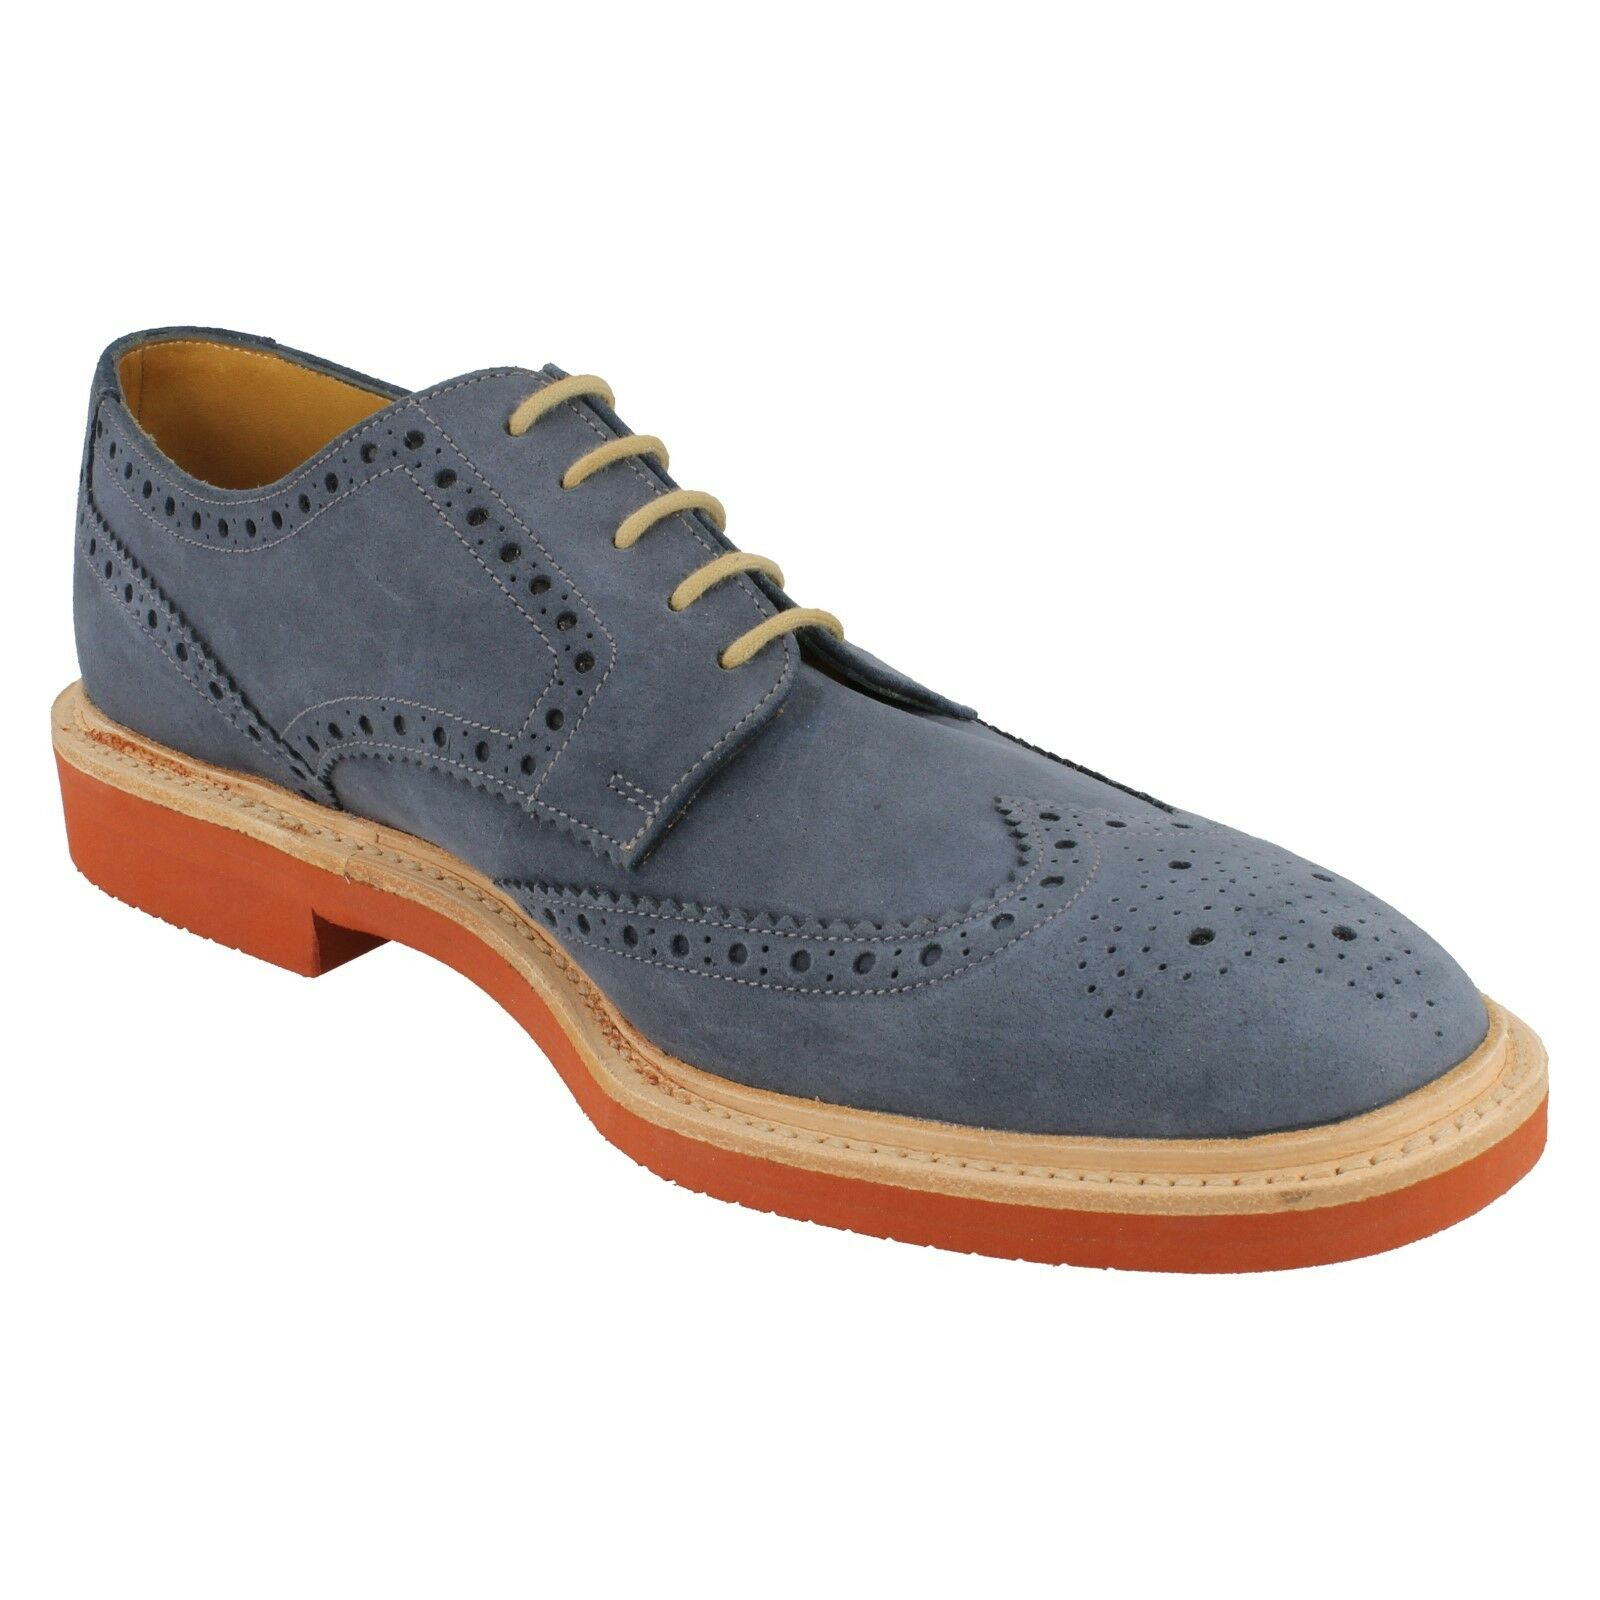 Mens Loake Oiled Suede Leather Formal Lace Up Formal Leather Brogue schuhe Logan Größe 6 & 6.5 f4d196